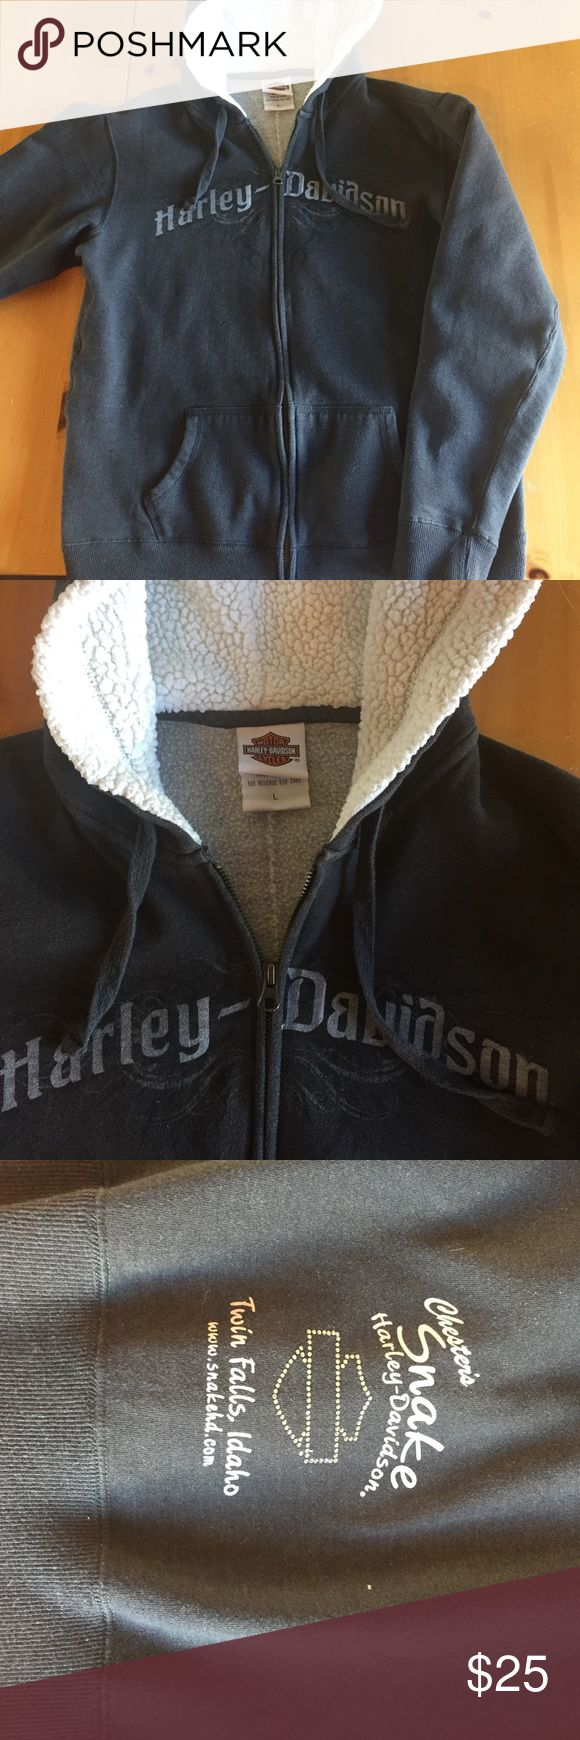 Black Harley Davidson sweatshirt Nice heavy black sweatshirt really good condition and comfy heavy sweatshirt material.    Firm on price. Quality throughout, has a worn look to sweatshirt material that is normal Harley-Davidson Jackets & Coats